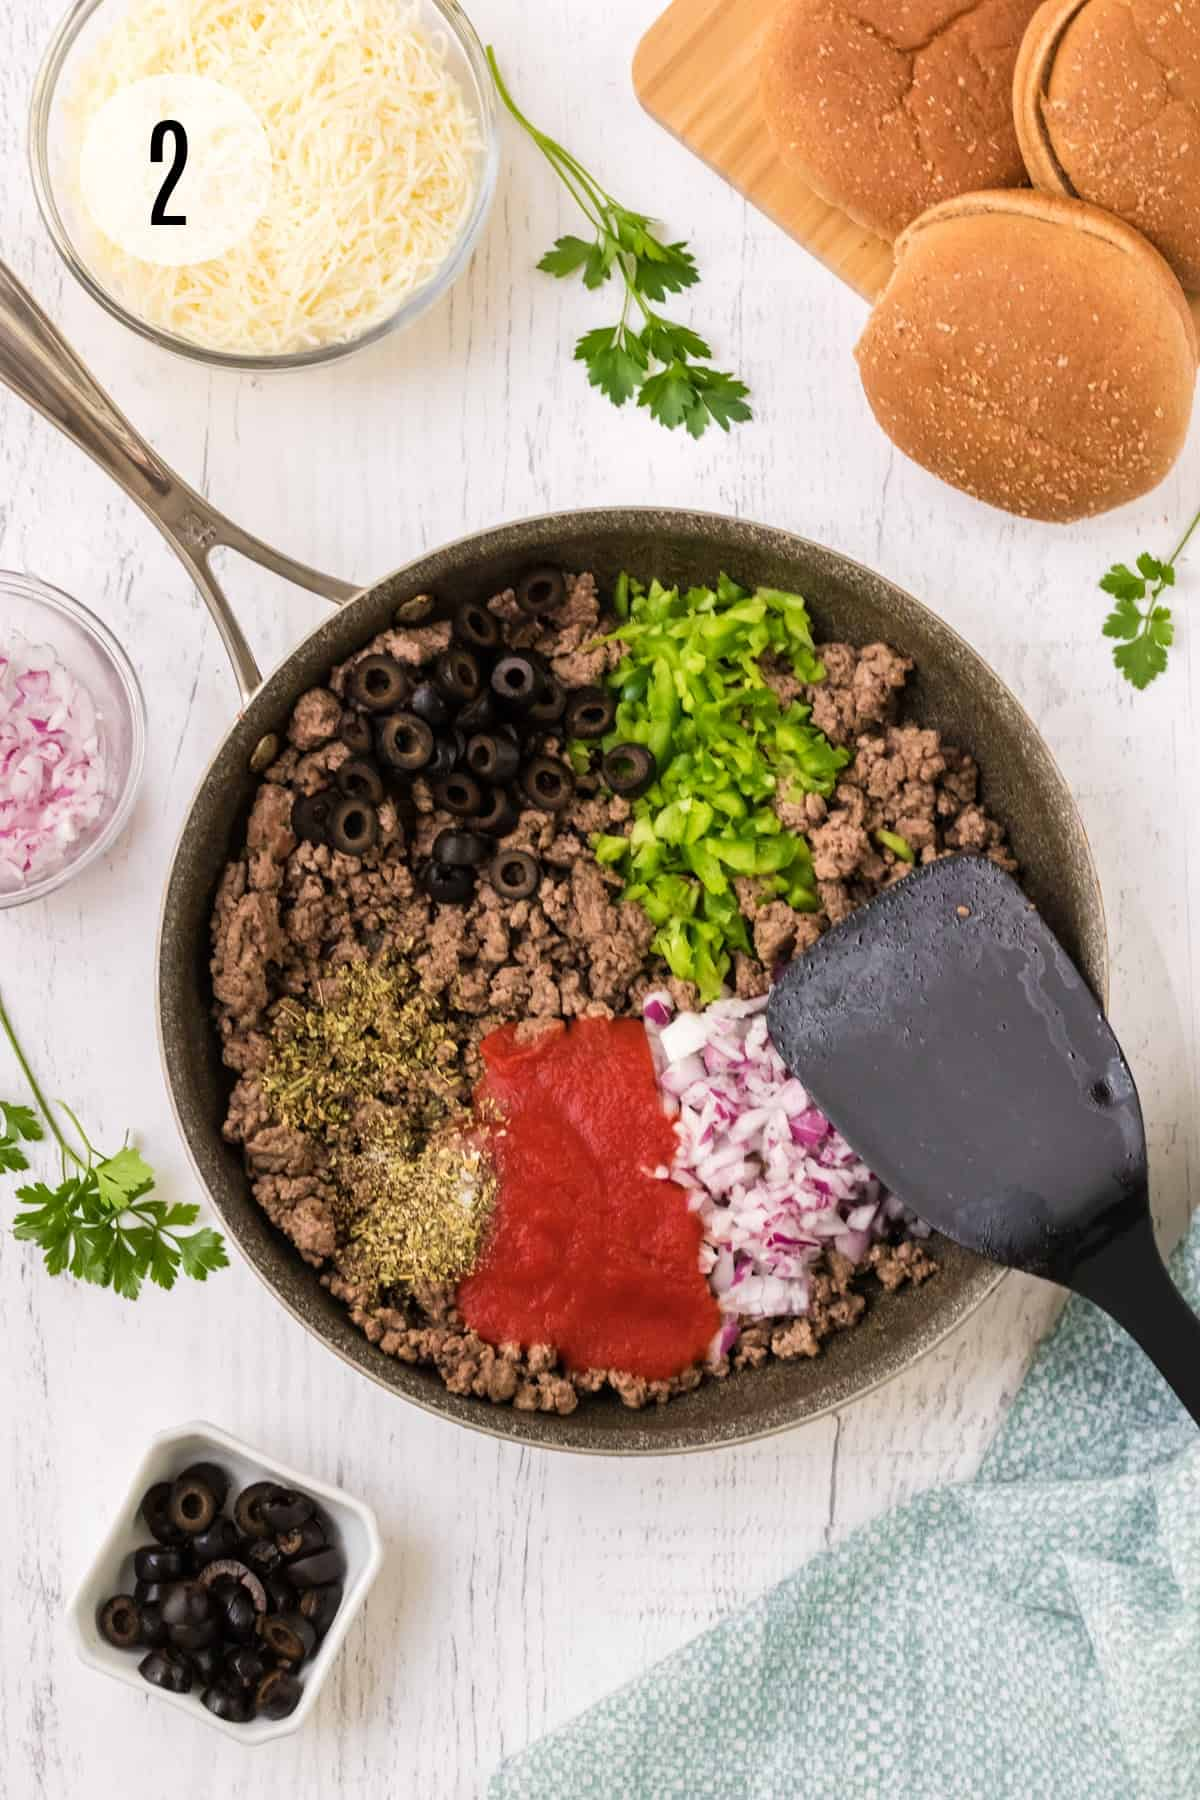 Skillet of ingredients for Italian Sloppy Joes like ground beef, onions, tomato sauce, and olives with small bowl of olives in lower left, chopped onions and bun in upper photo and blue linen in lower right.